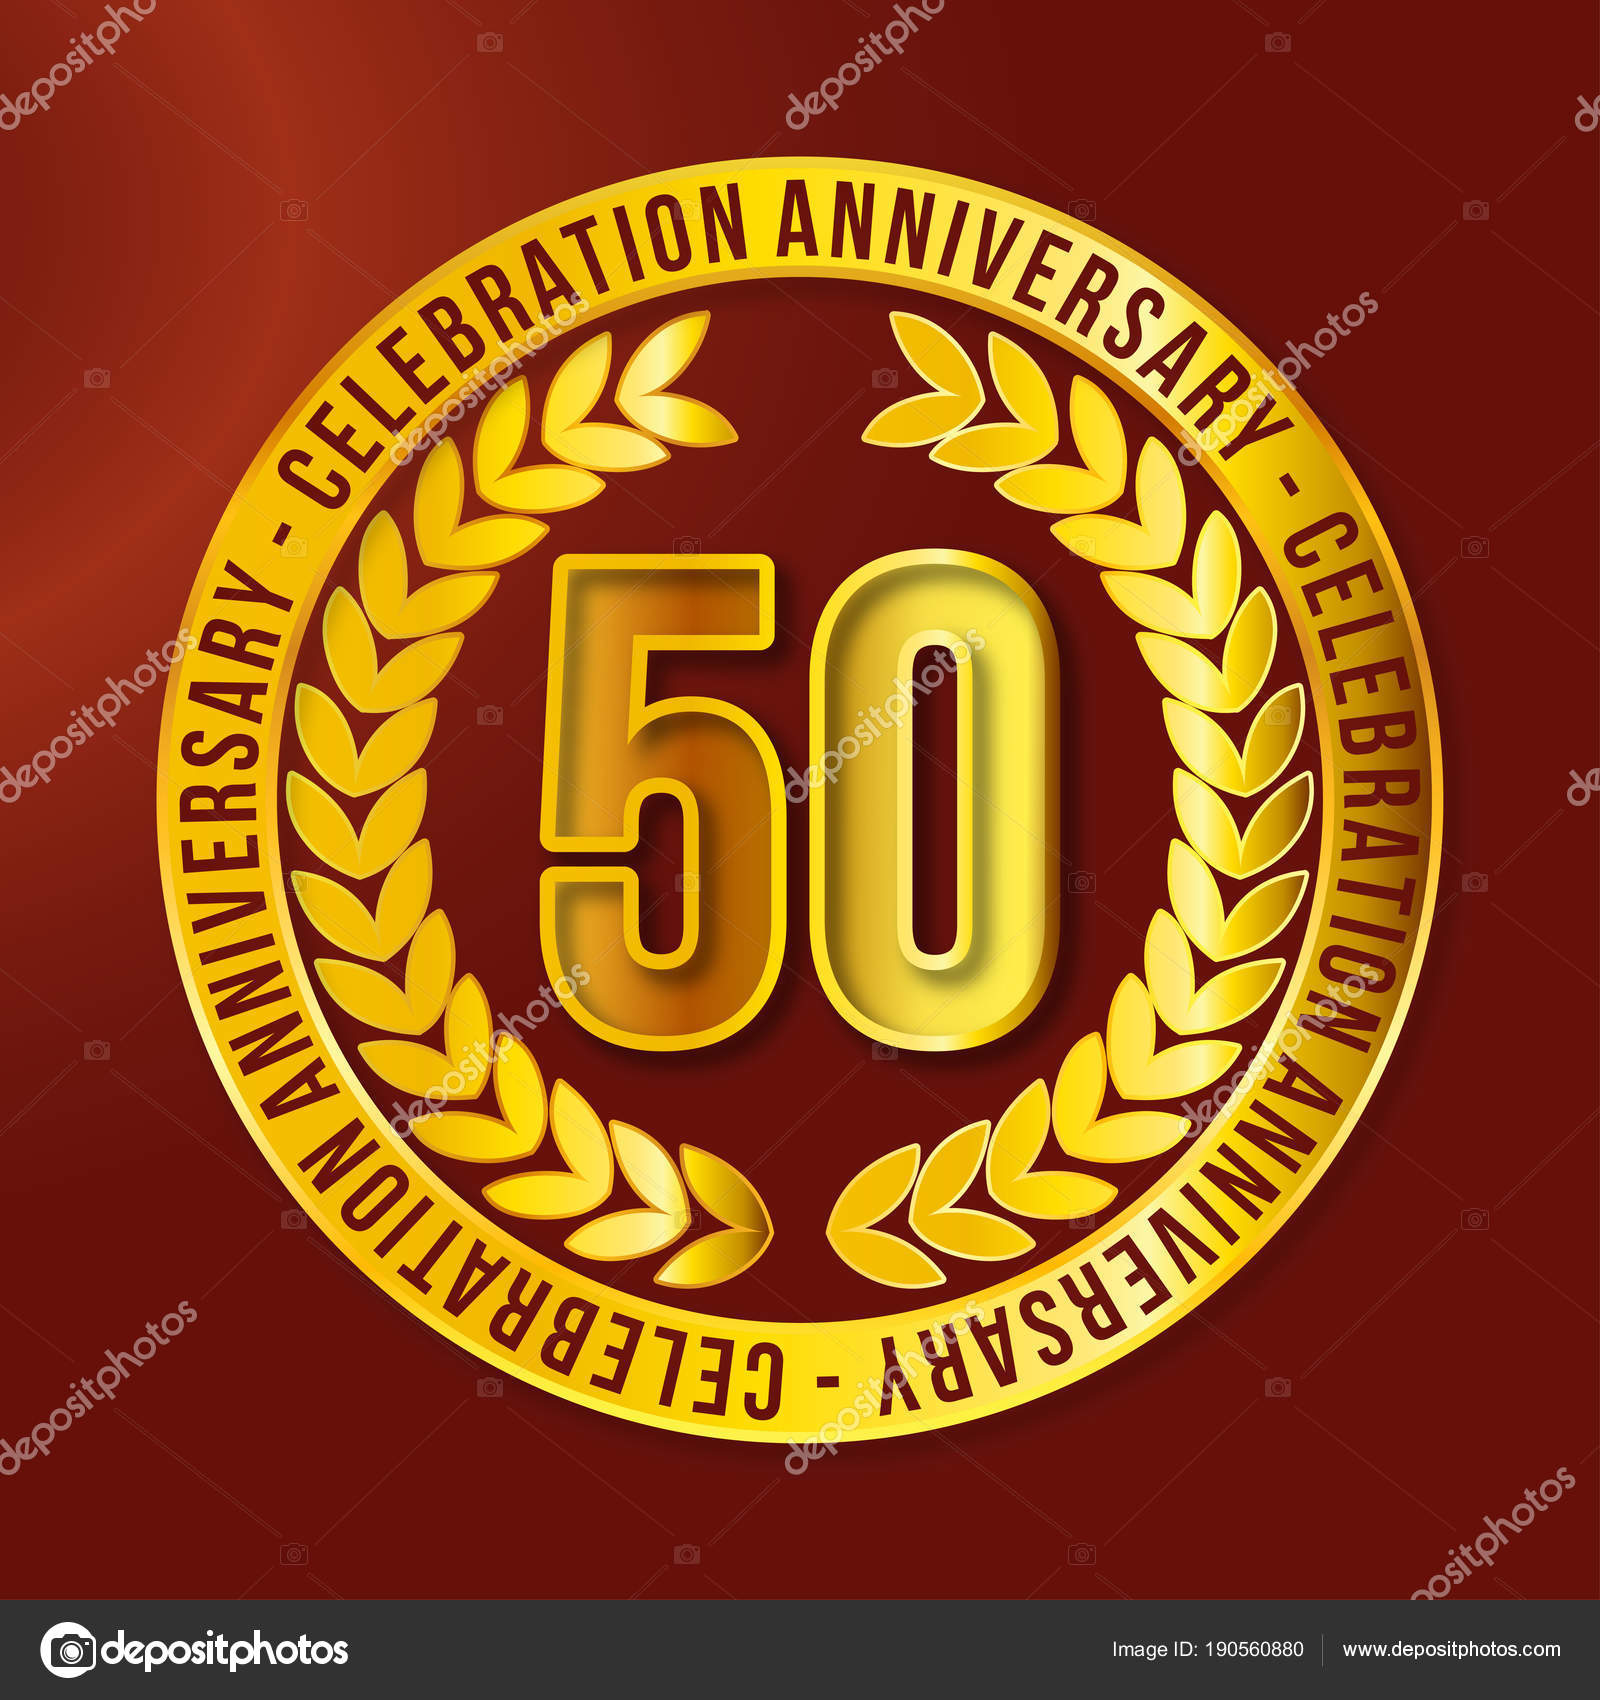 Birthday Greeting Card For 50 Years Anniversary Vector Illustration Stock